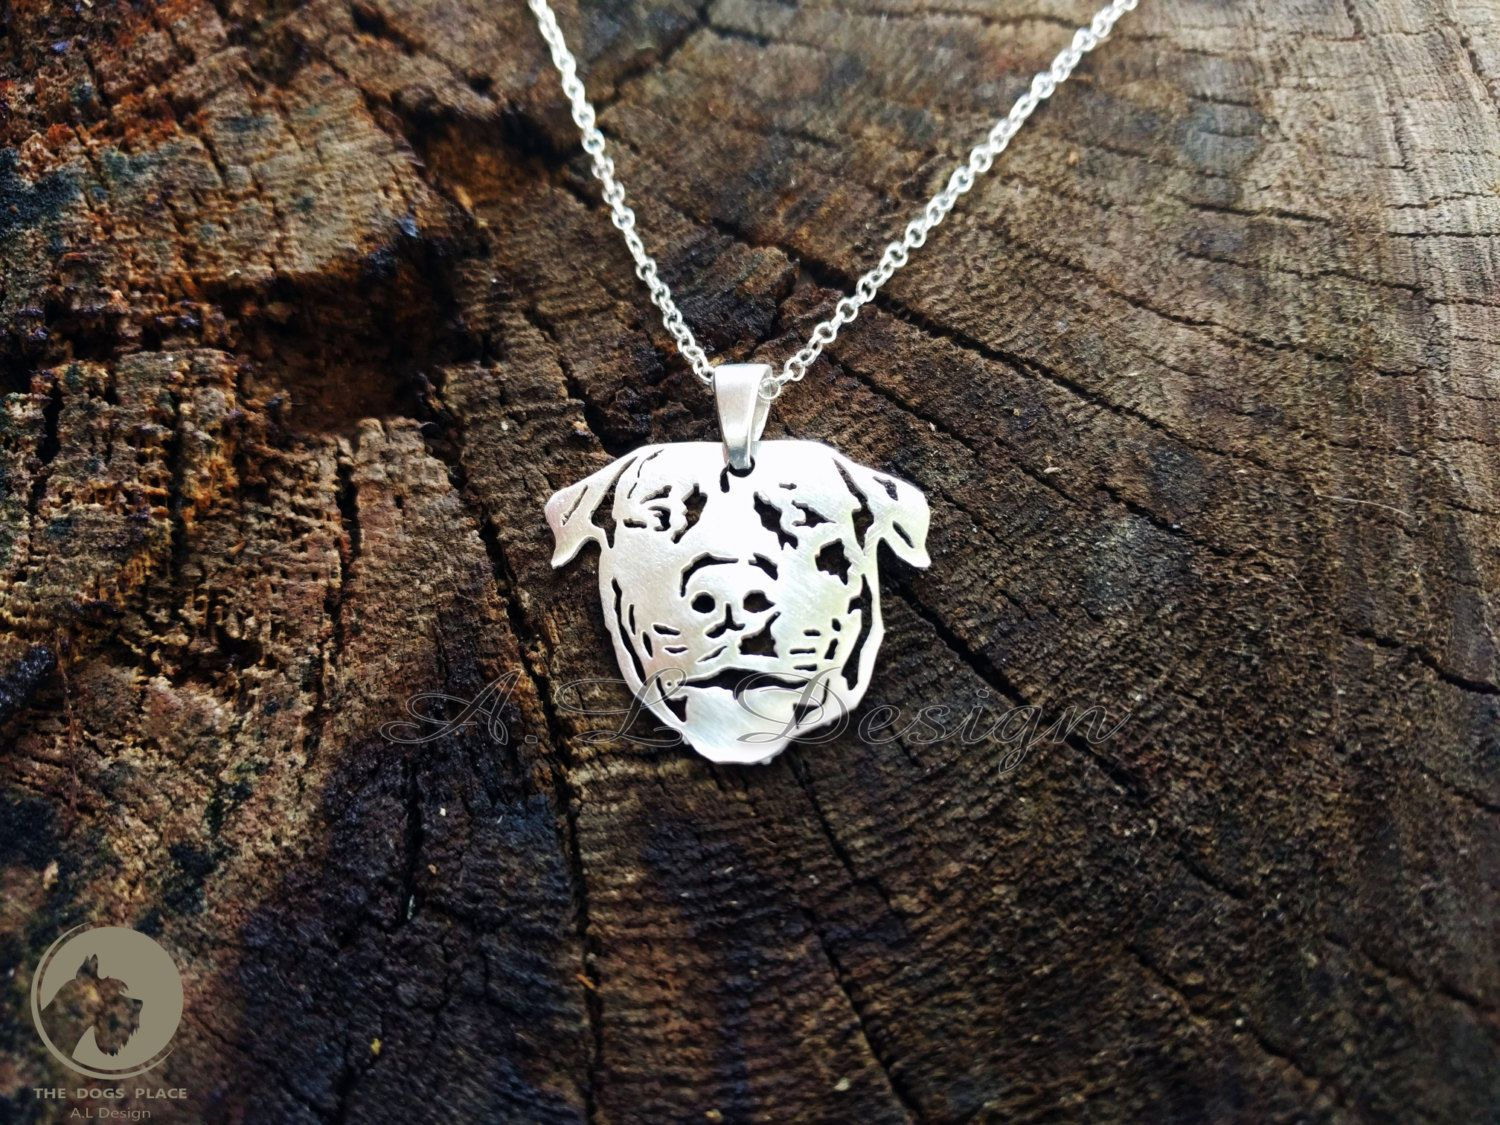 Puppy Necklace Dog Charm Rottweiler Lover Rottweiler Necklace Rottweiler Jewelry Pet Lover Charm Dog Pendant